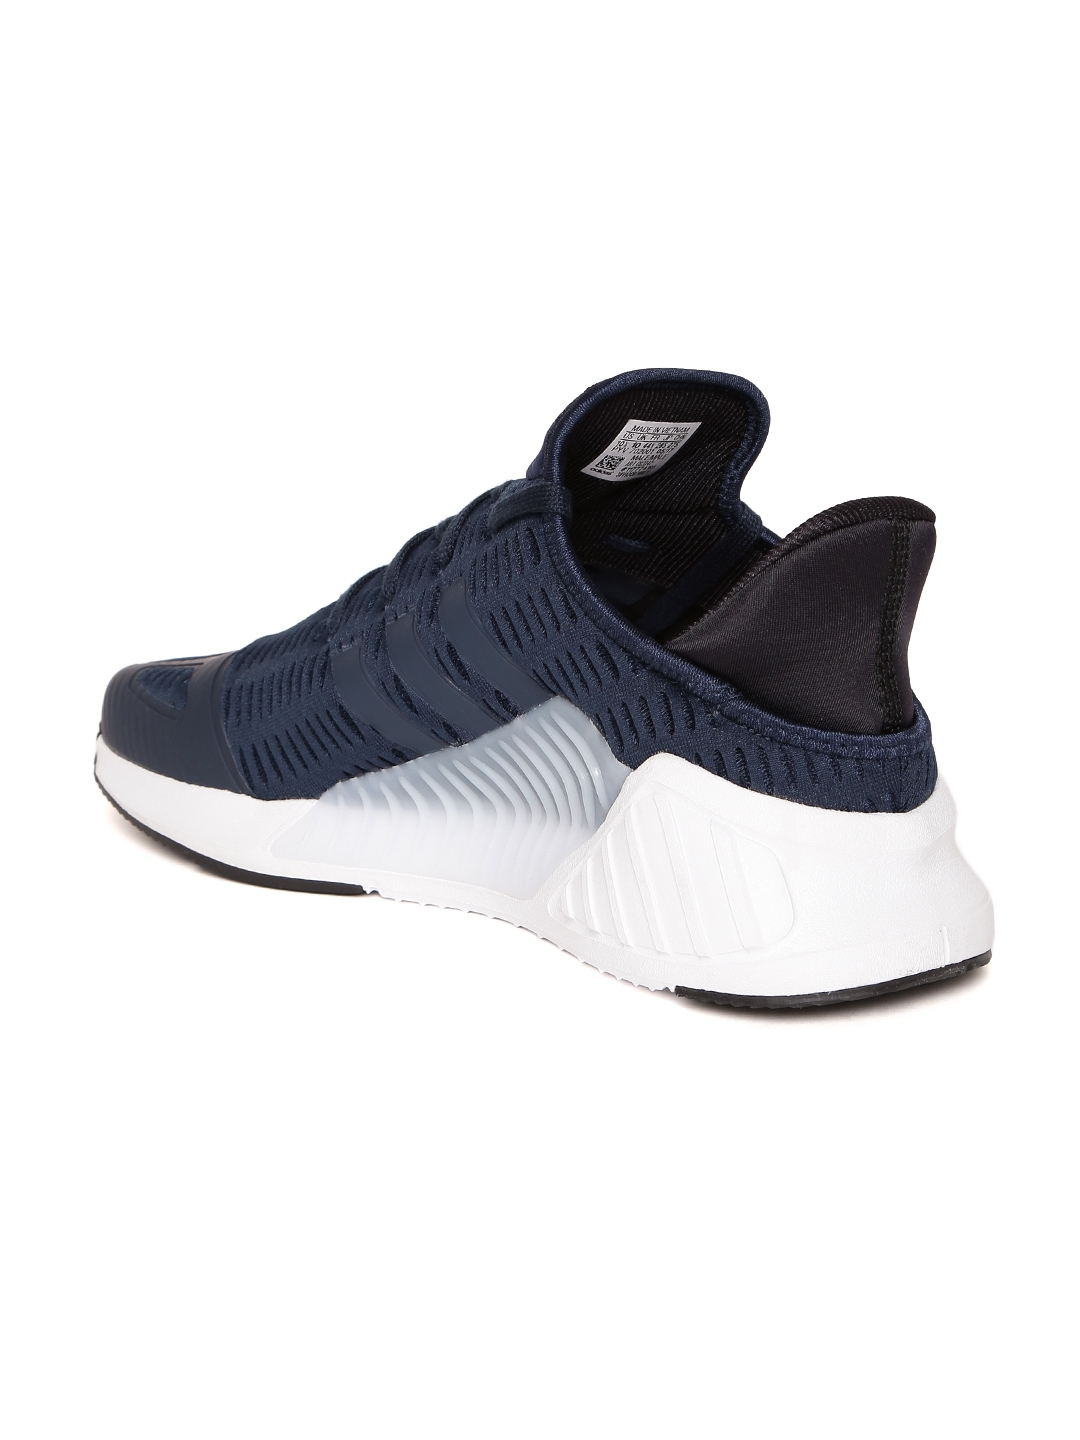 c32e8e9afe Buy ADIDAS Originals Men Navy CLIMACOOL 02/17 Sneakers - Casual ...